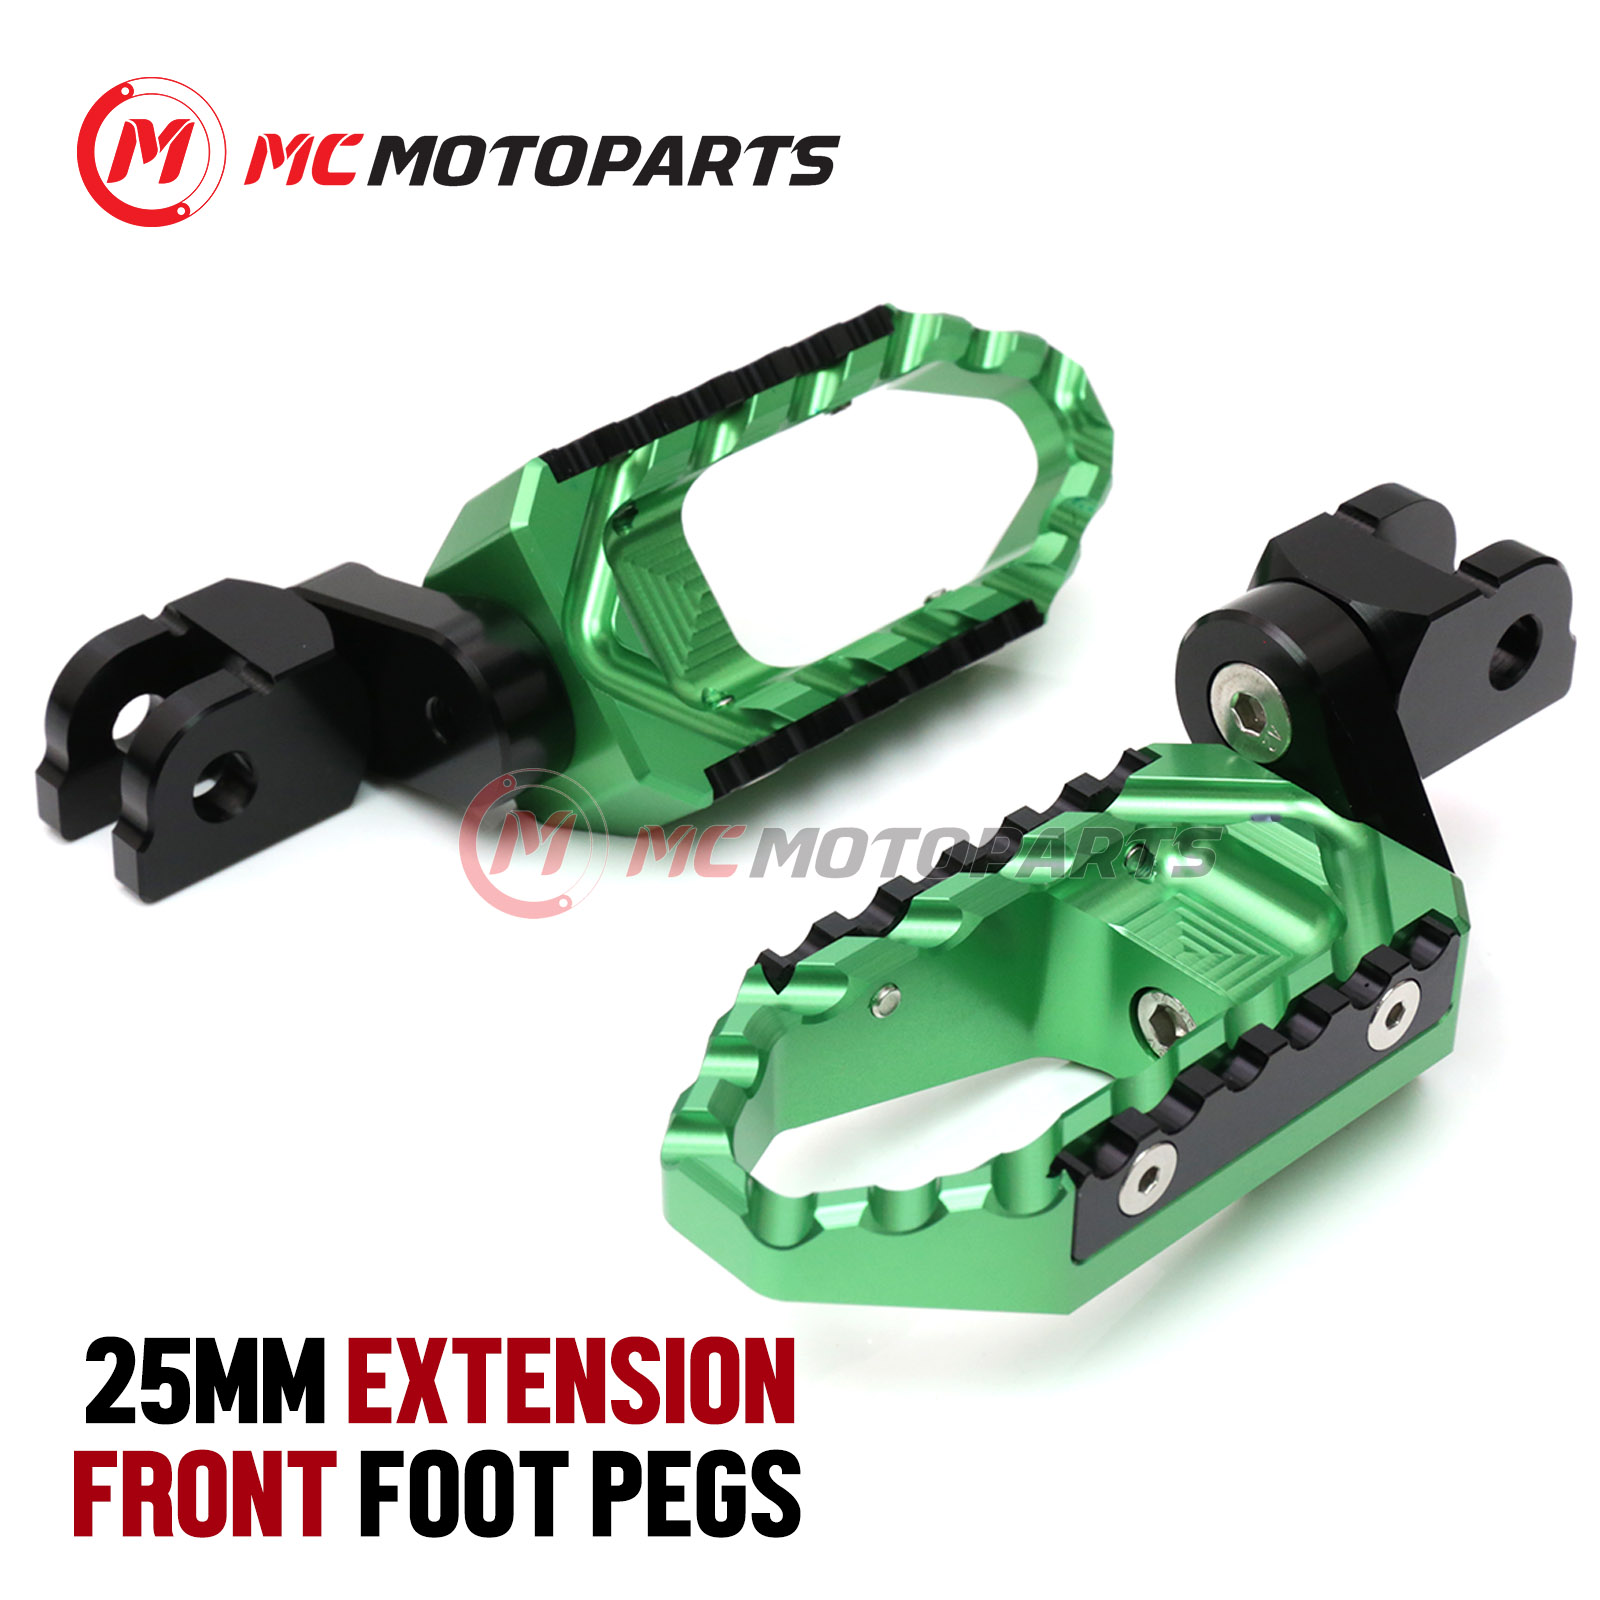 Silver CNC 40mm Adjustable Riser Front Touring Foot Pegs For Honda NC700 S//X 2012-2016